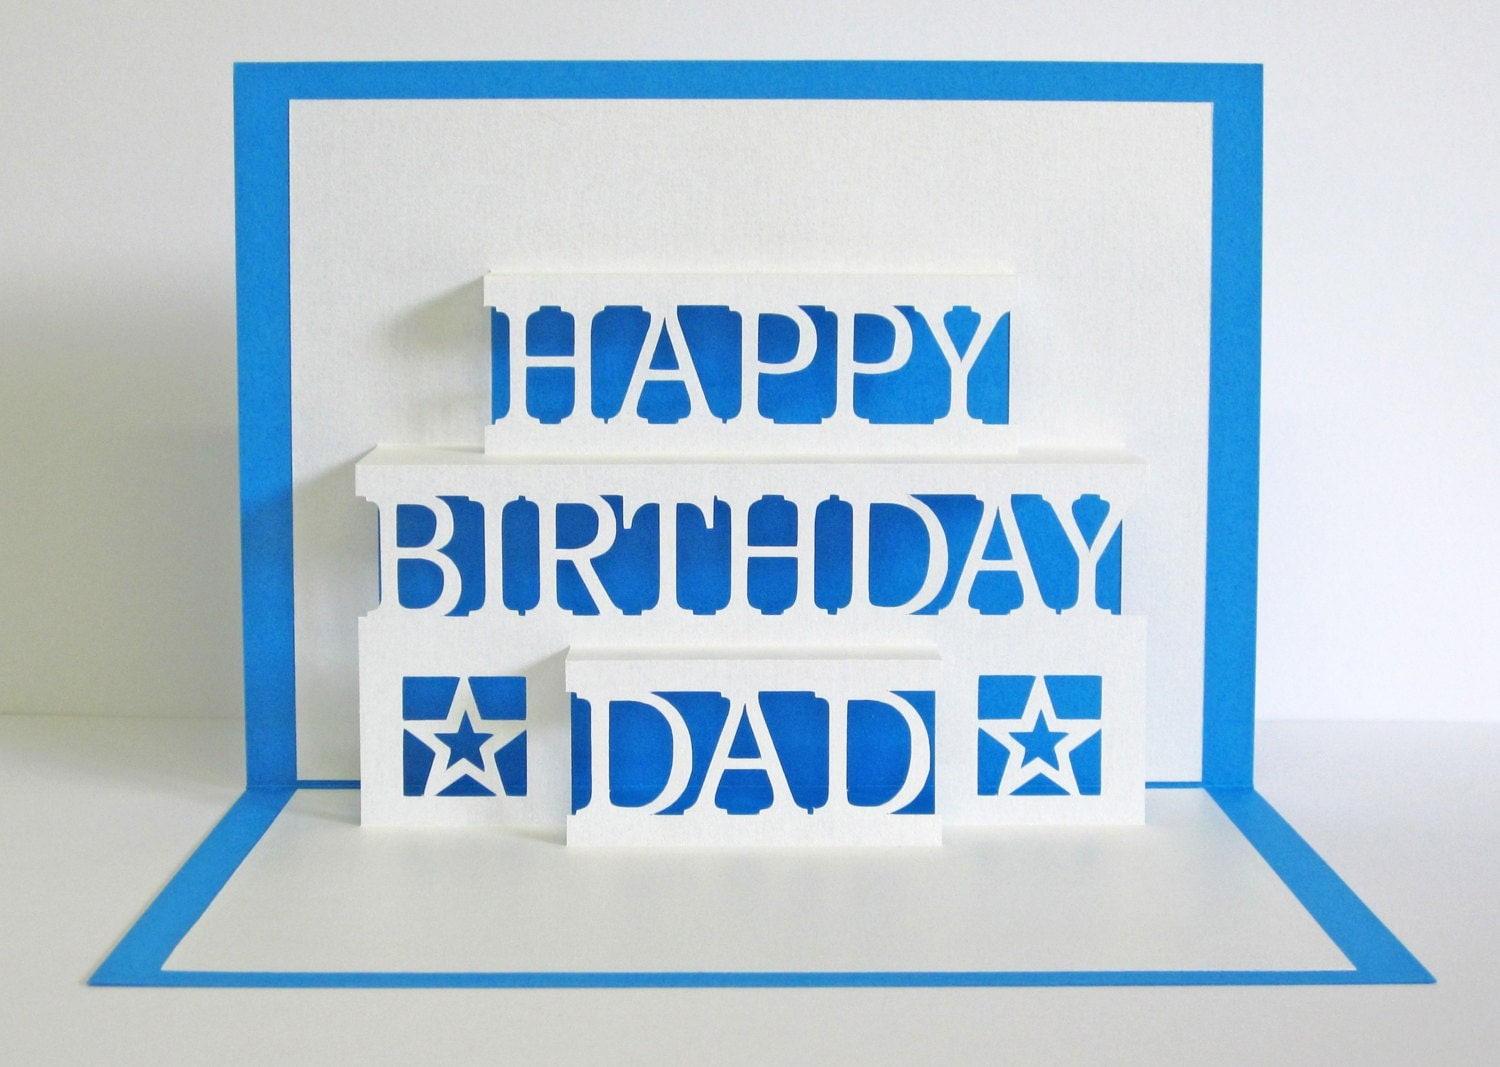 Papa geburtstagskarte 3d pop up happy birthday dad card - Geburtstagskarte pop up ...